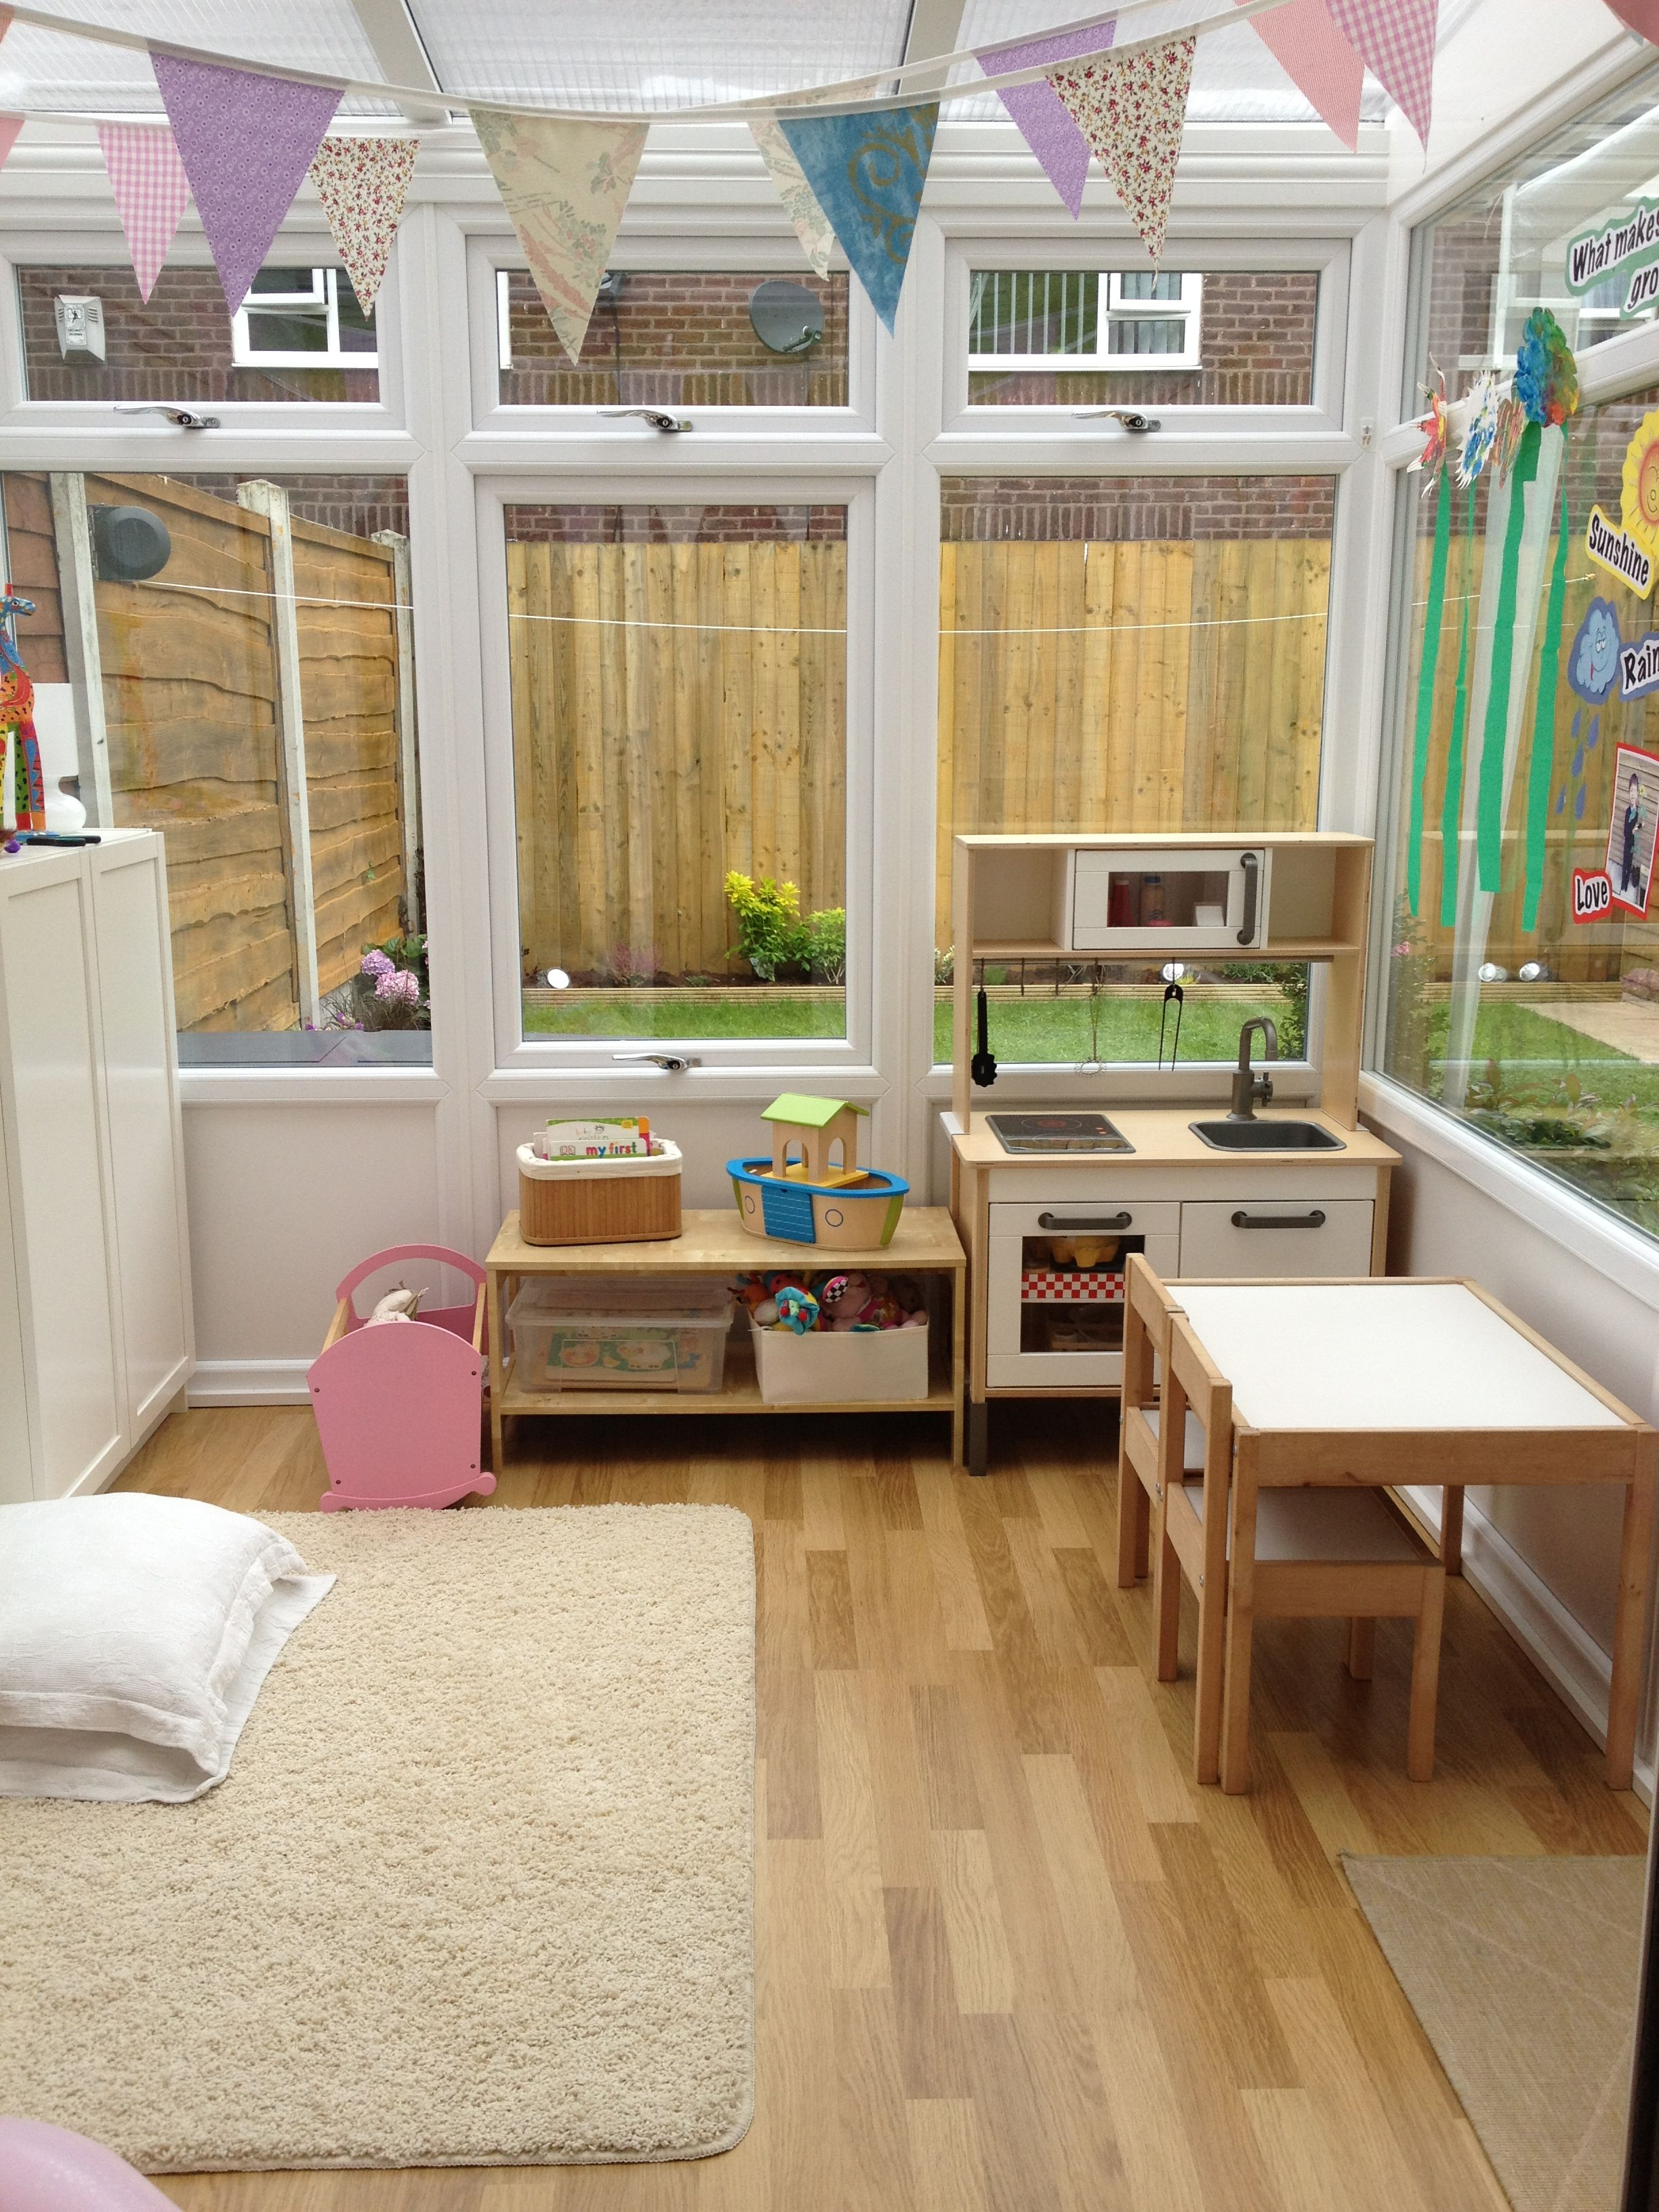 Conservatory Converted Into A Playroom | Playroom